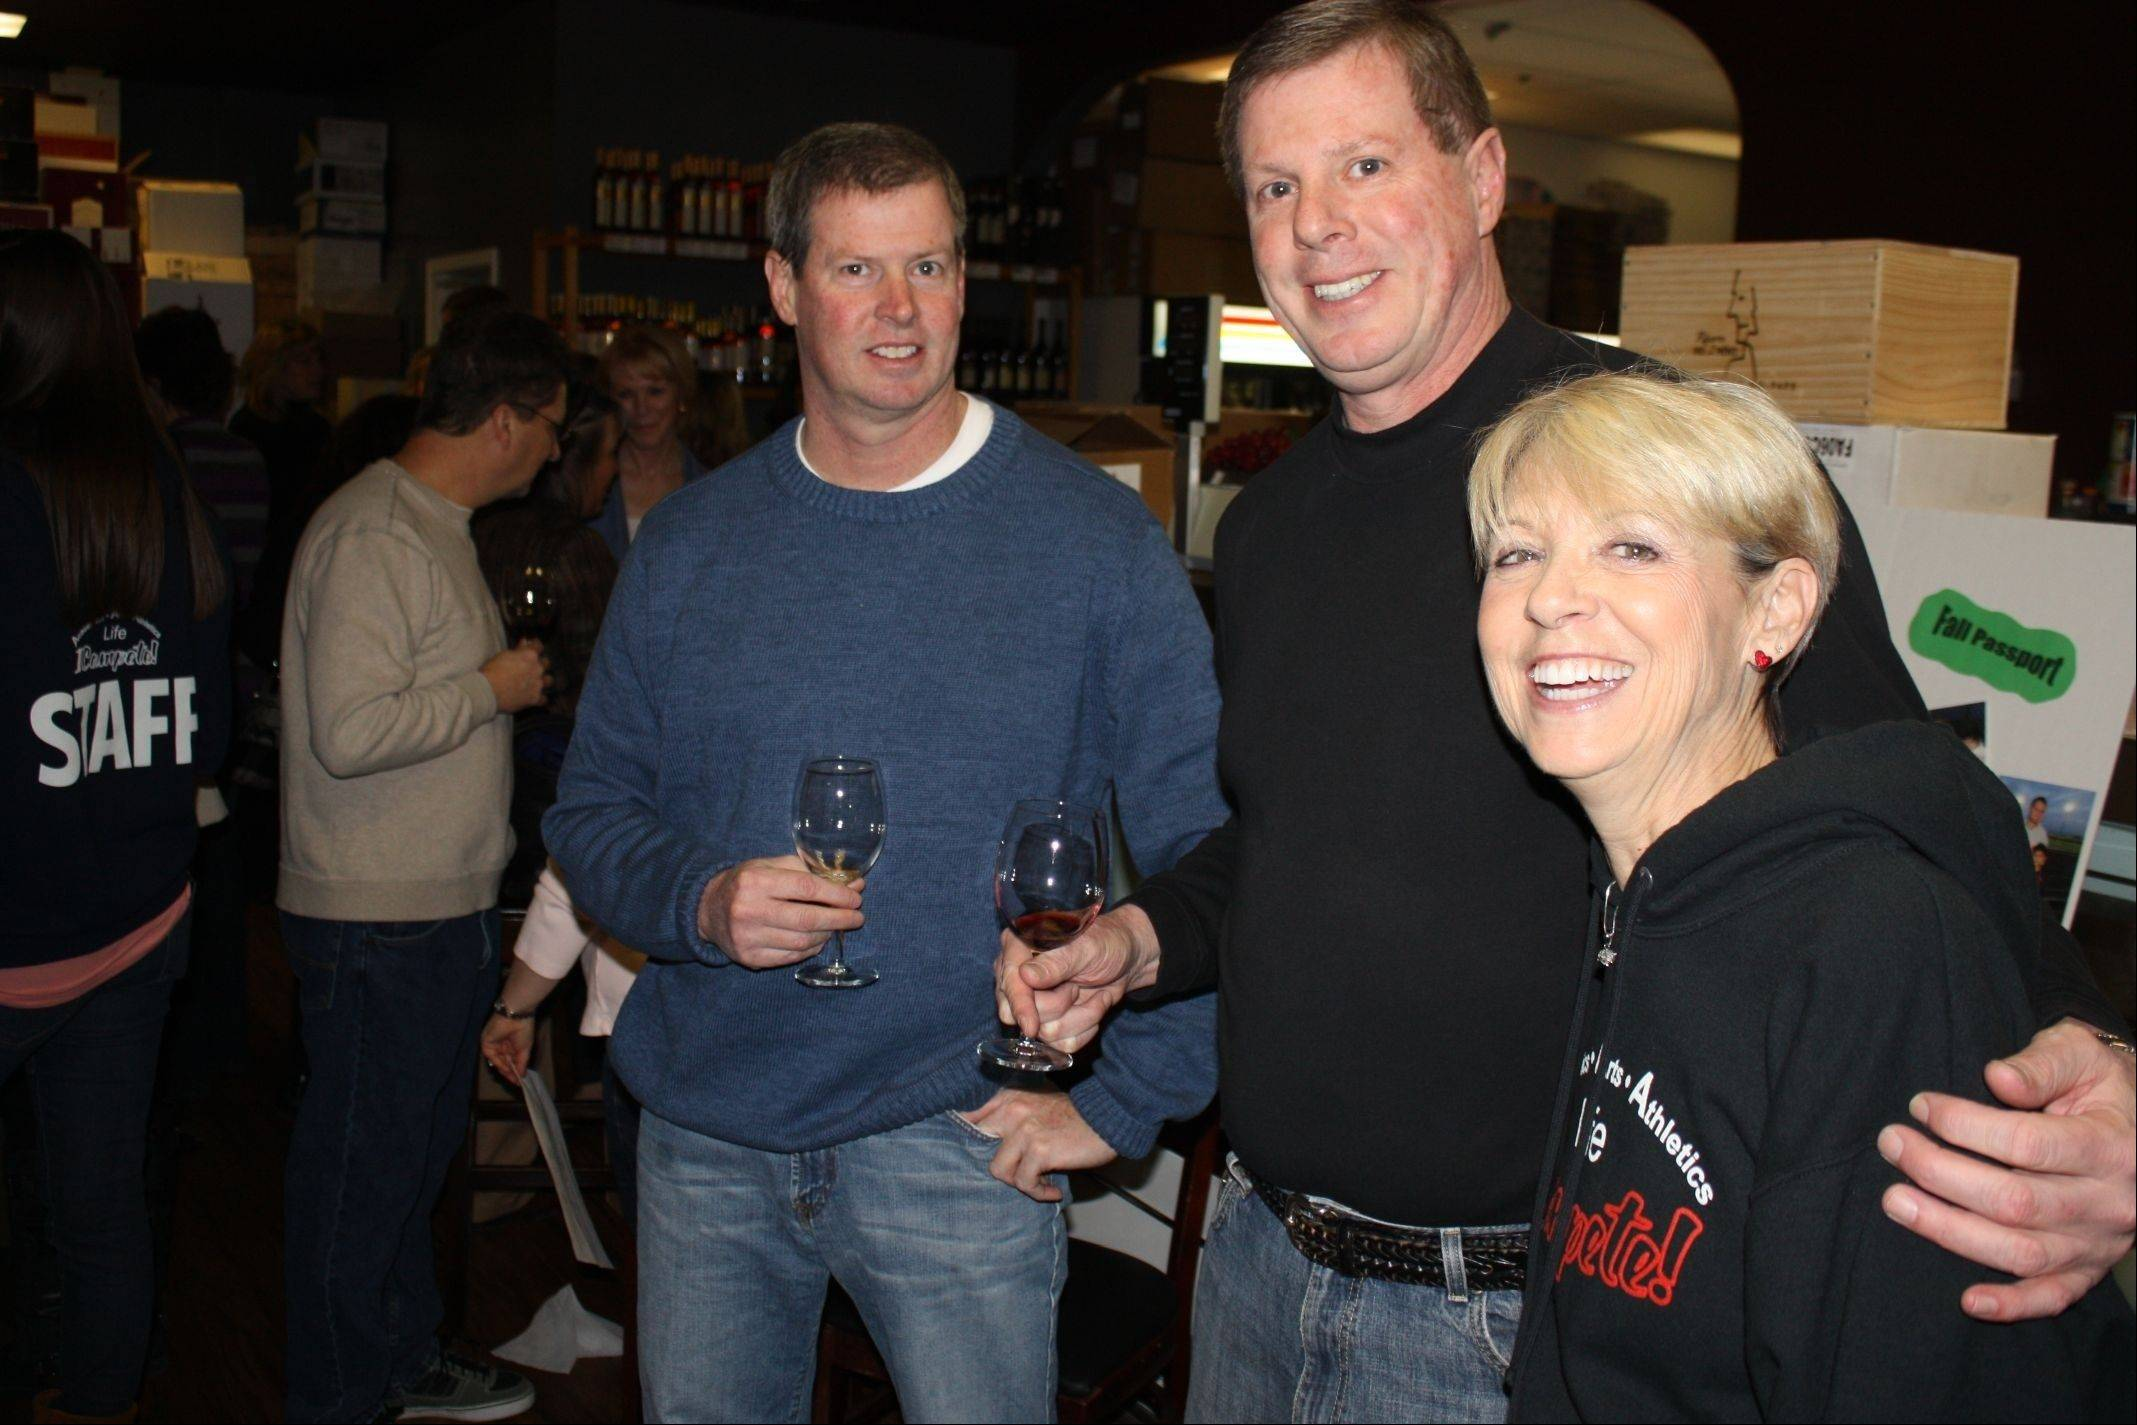 Paul Hass, Bob Hass and Nancy Grybash at the 2012 inaugural ICompete Wine Tasting event.